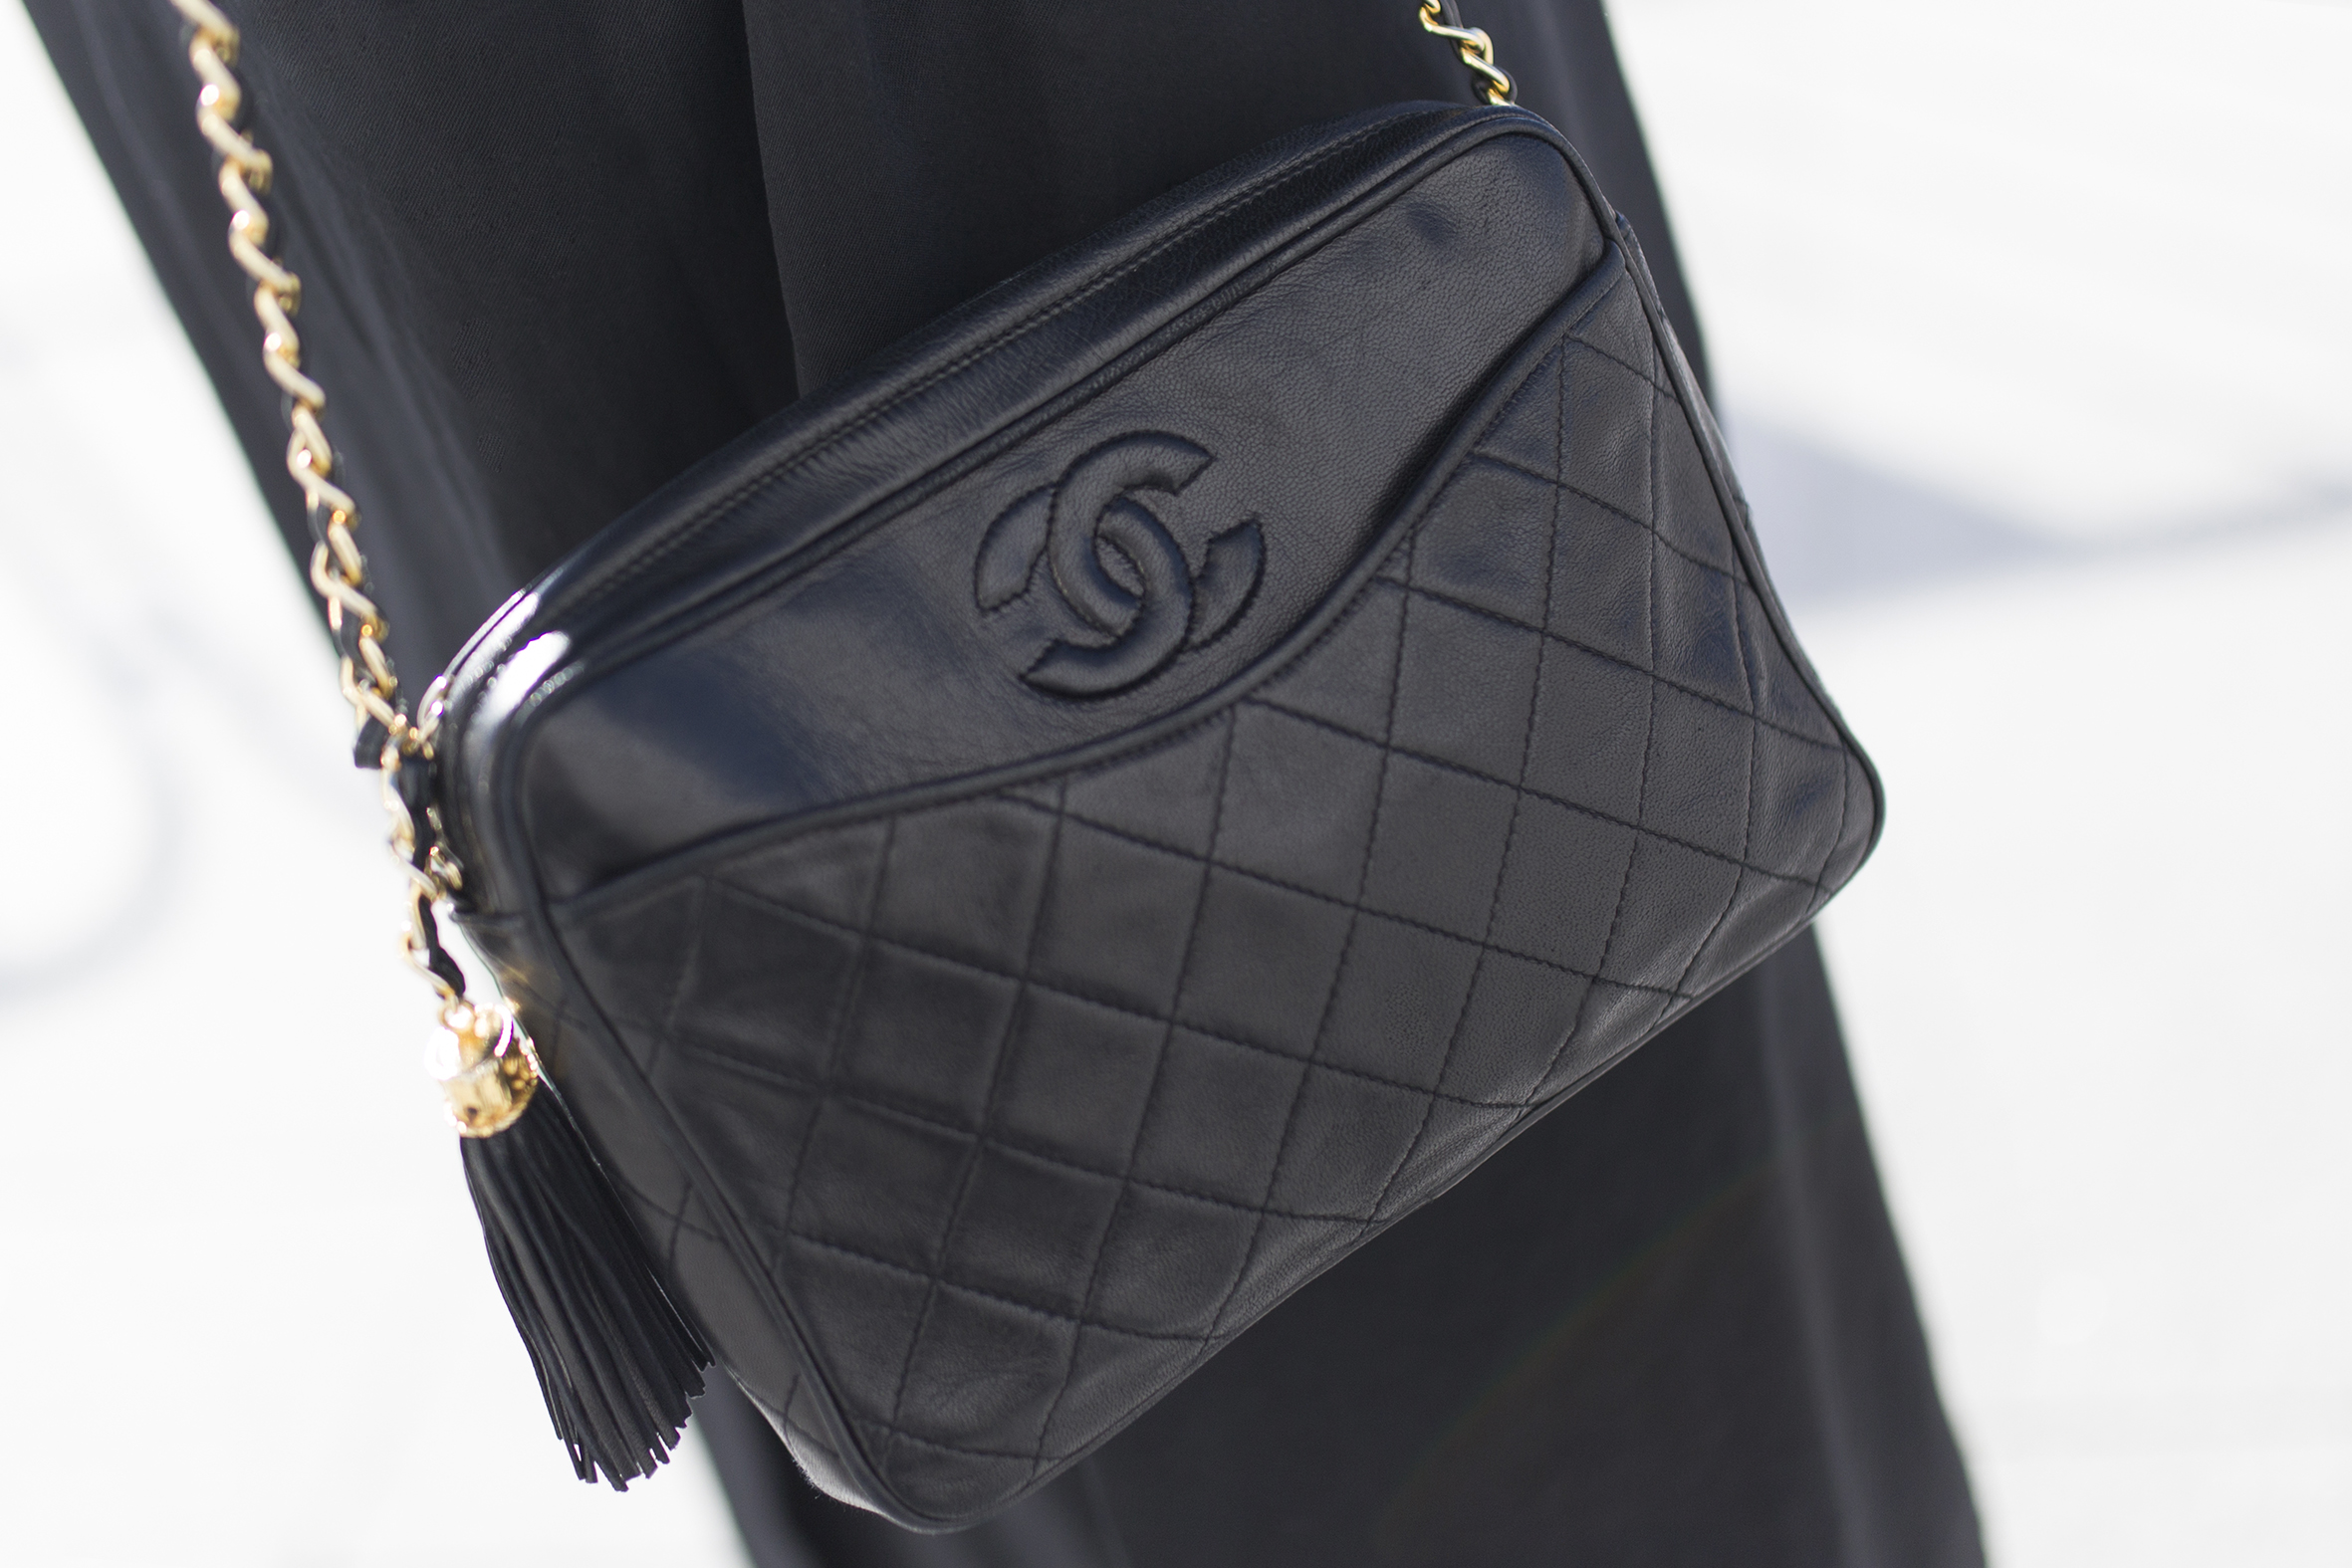 Black-chanel bag-Vintage Chanel-descalzaporelparque-blogger-coruña-Black look